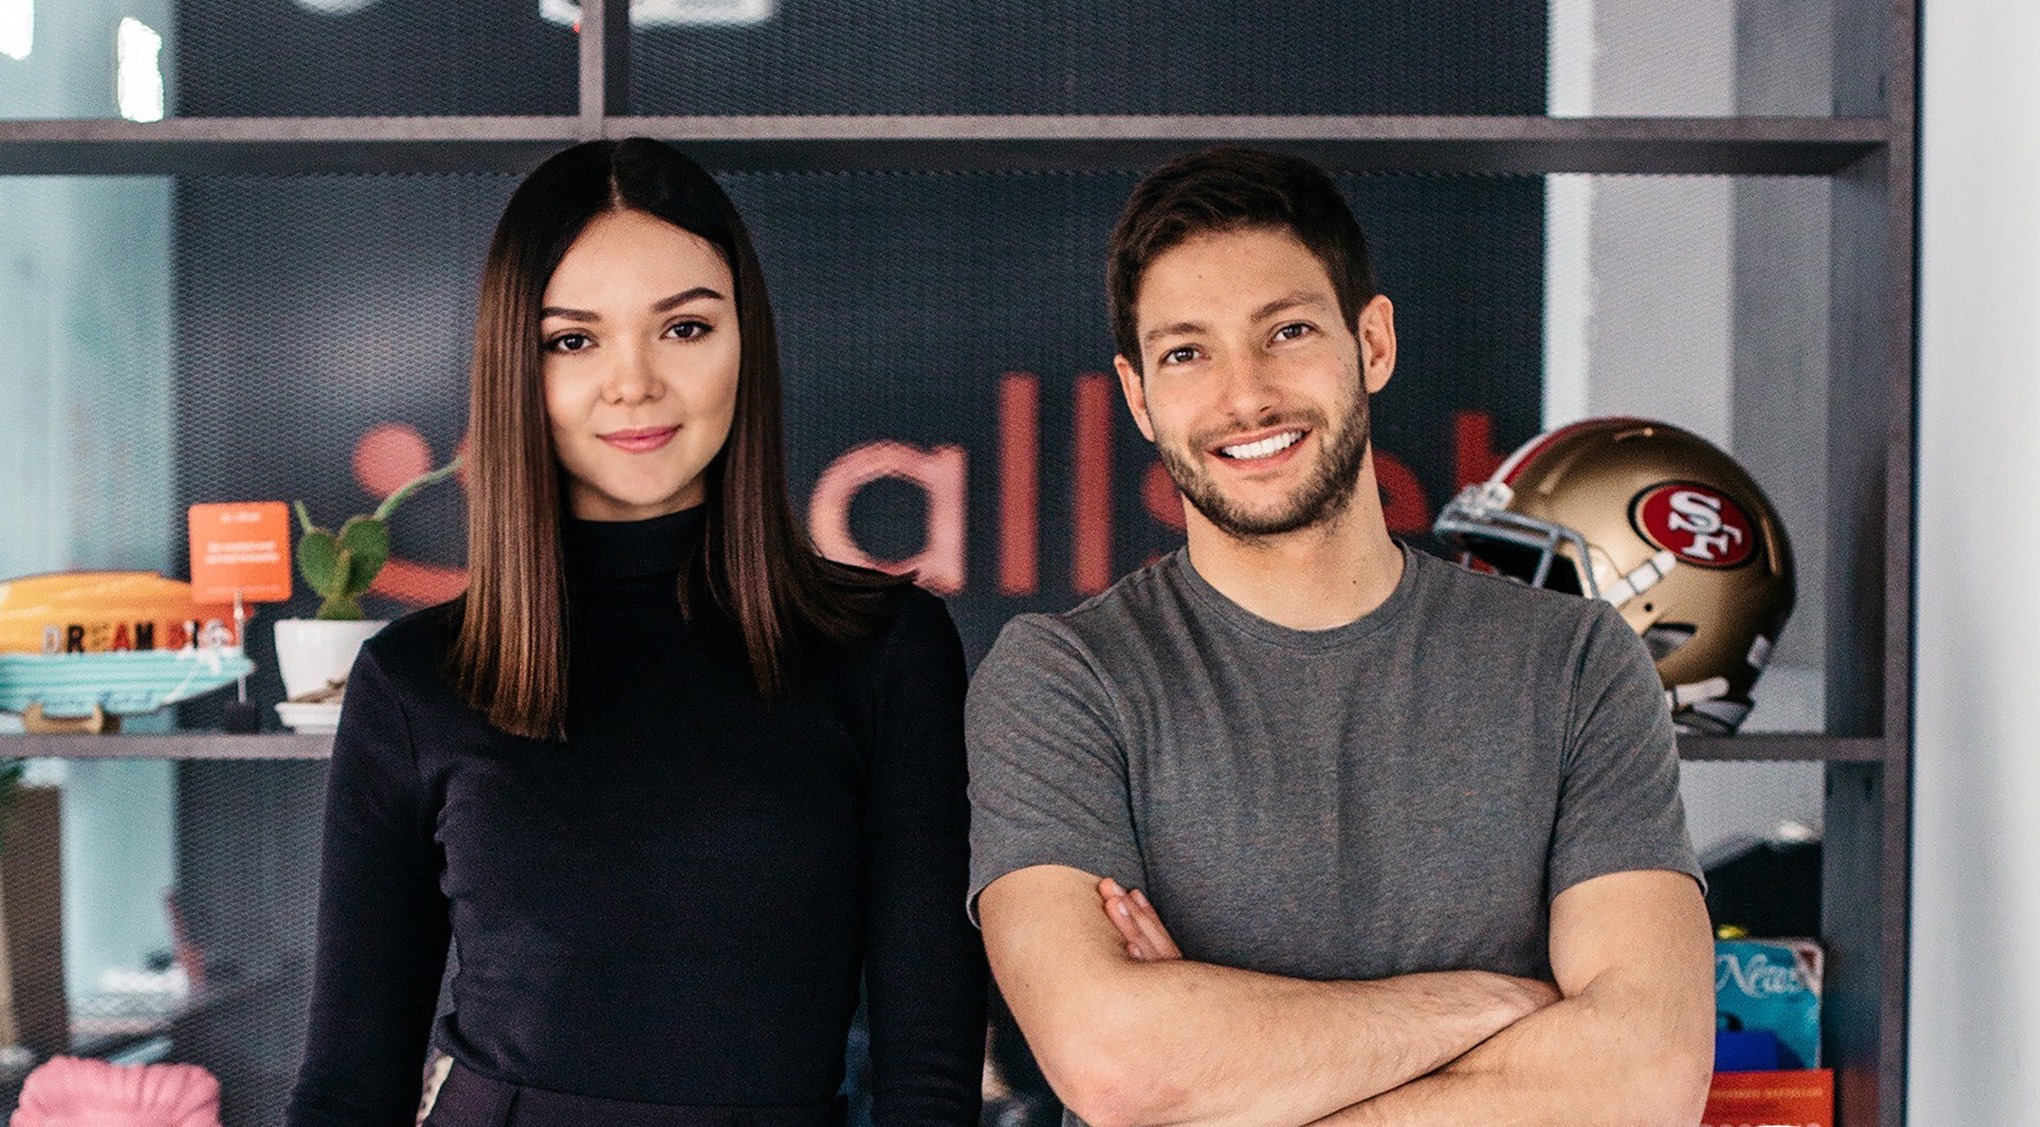 As COVID-19 Ravages The Restaurant Industry, Silicon Valley Pumps $8 Million Into This Dining And Takeout Startup